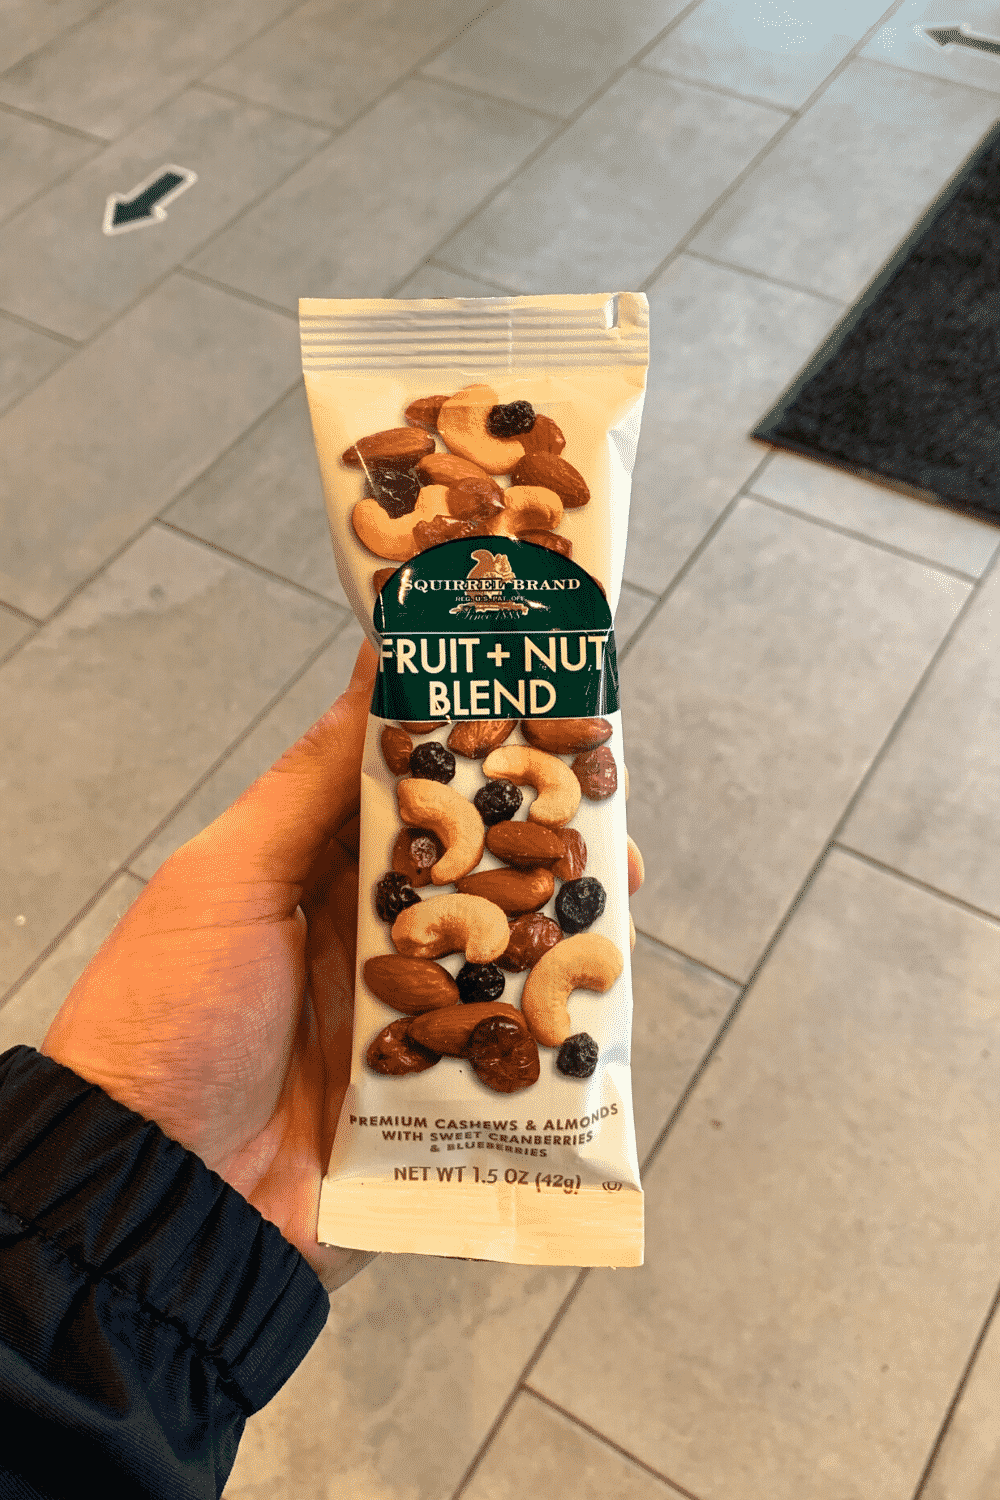 A hand holding a bag of fruit and nut blend.